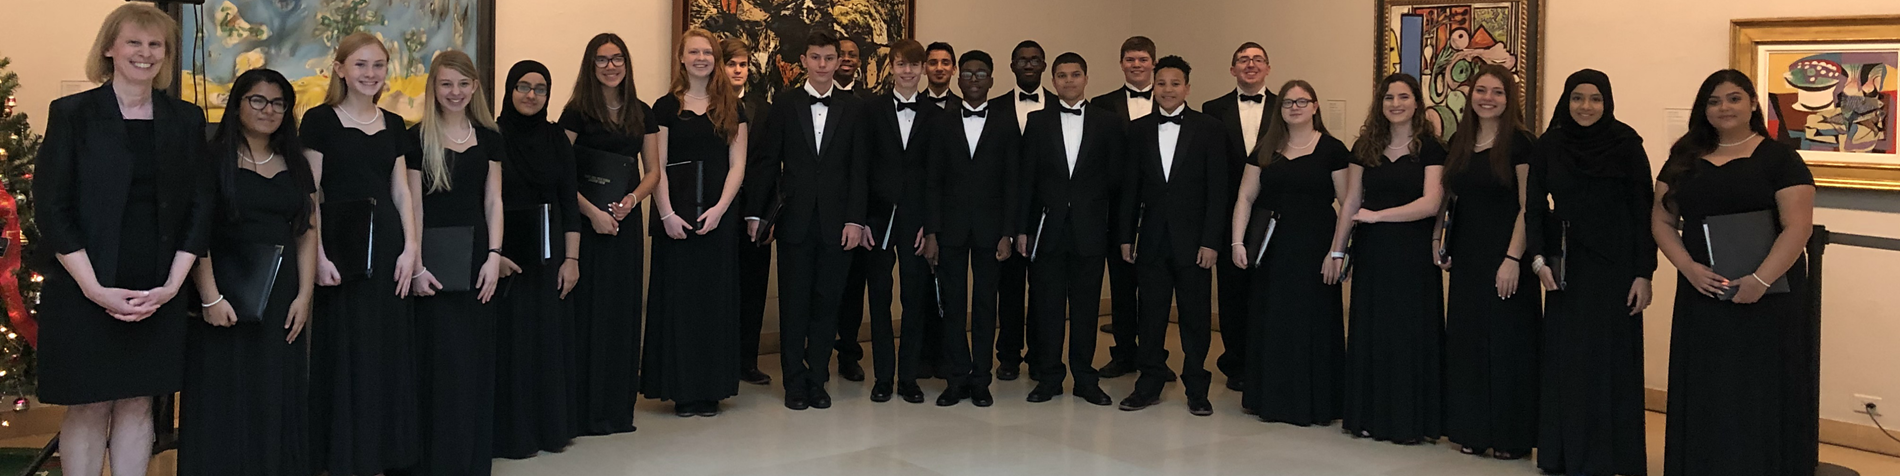 Rocky Hill High School Chamber Choir preforming at the Wadsworth